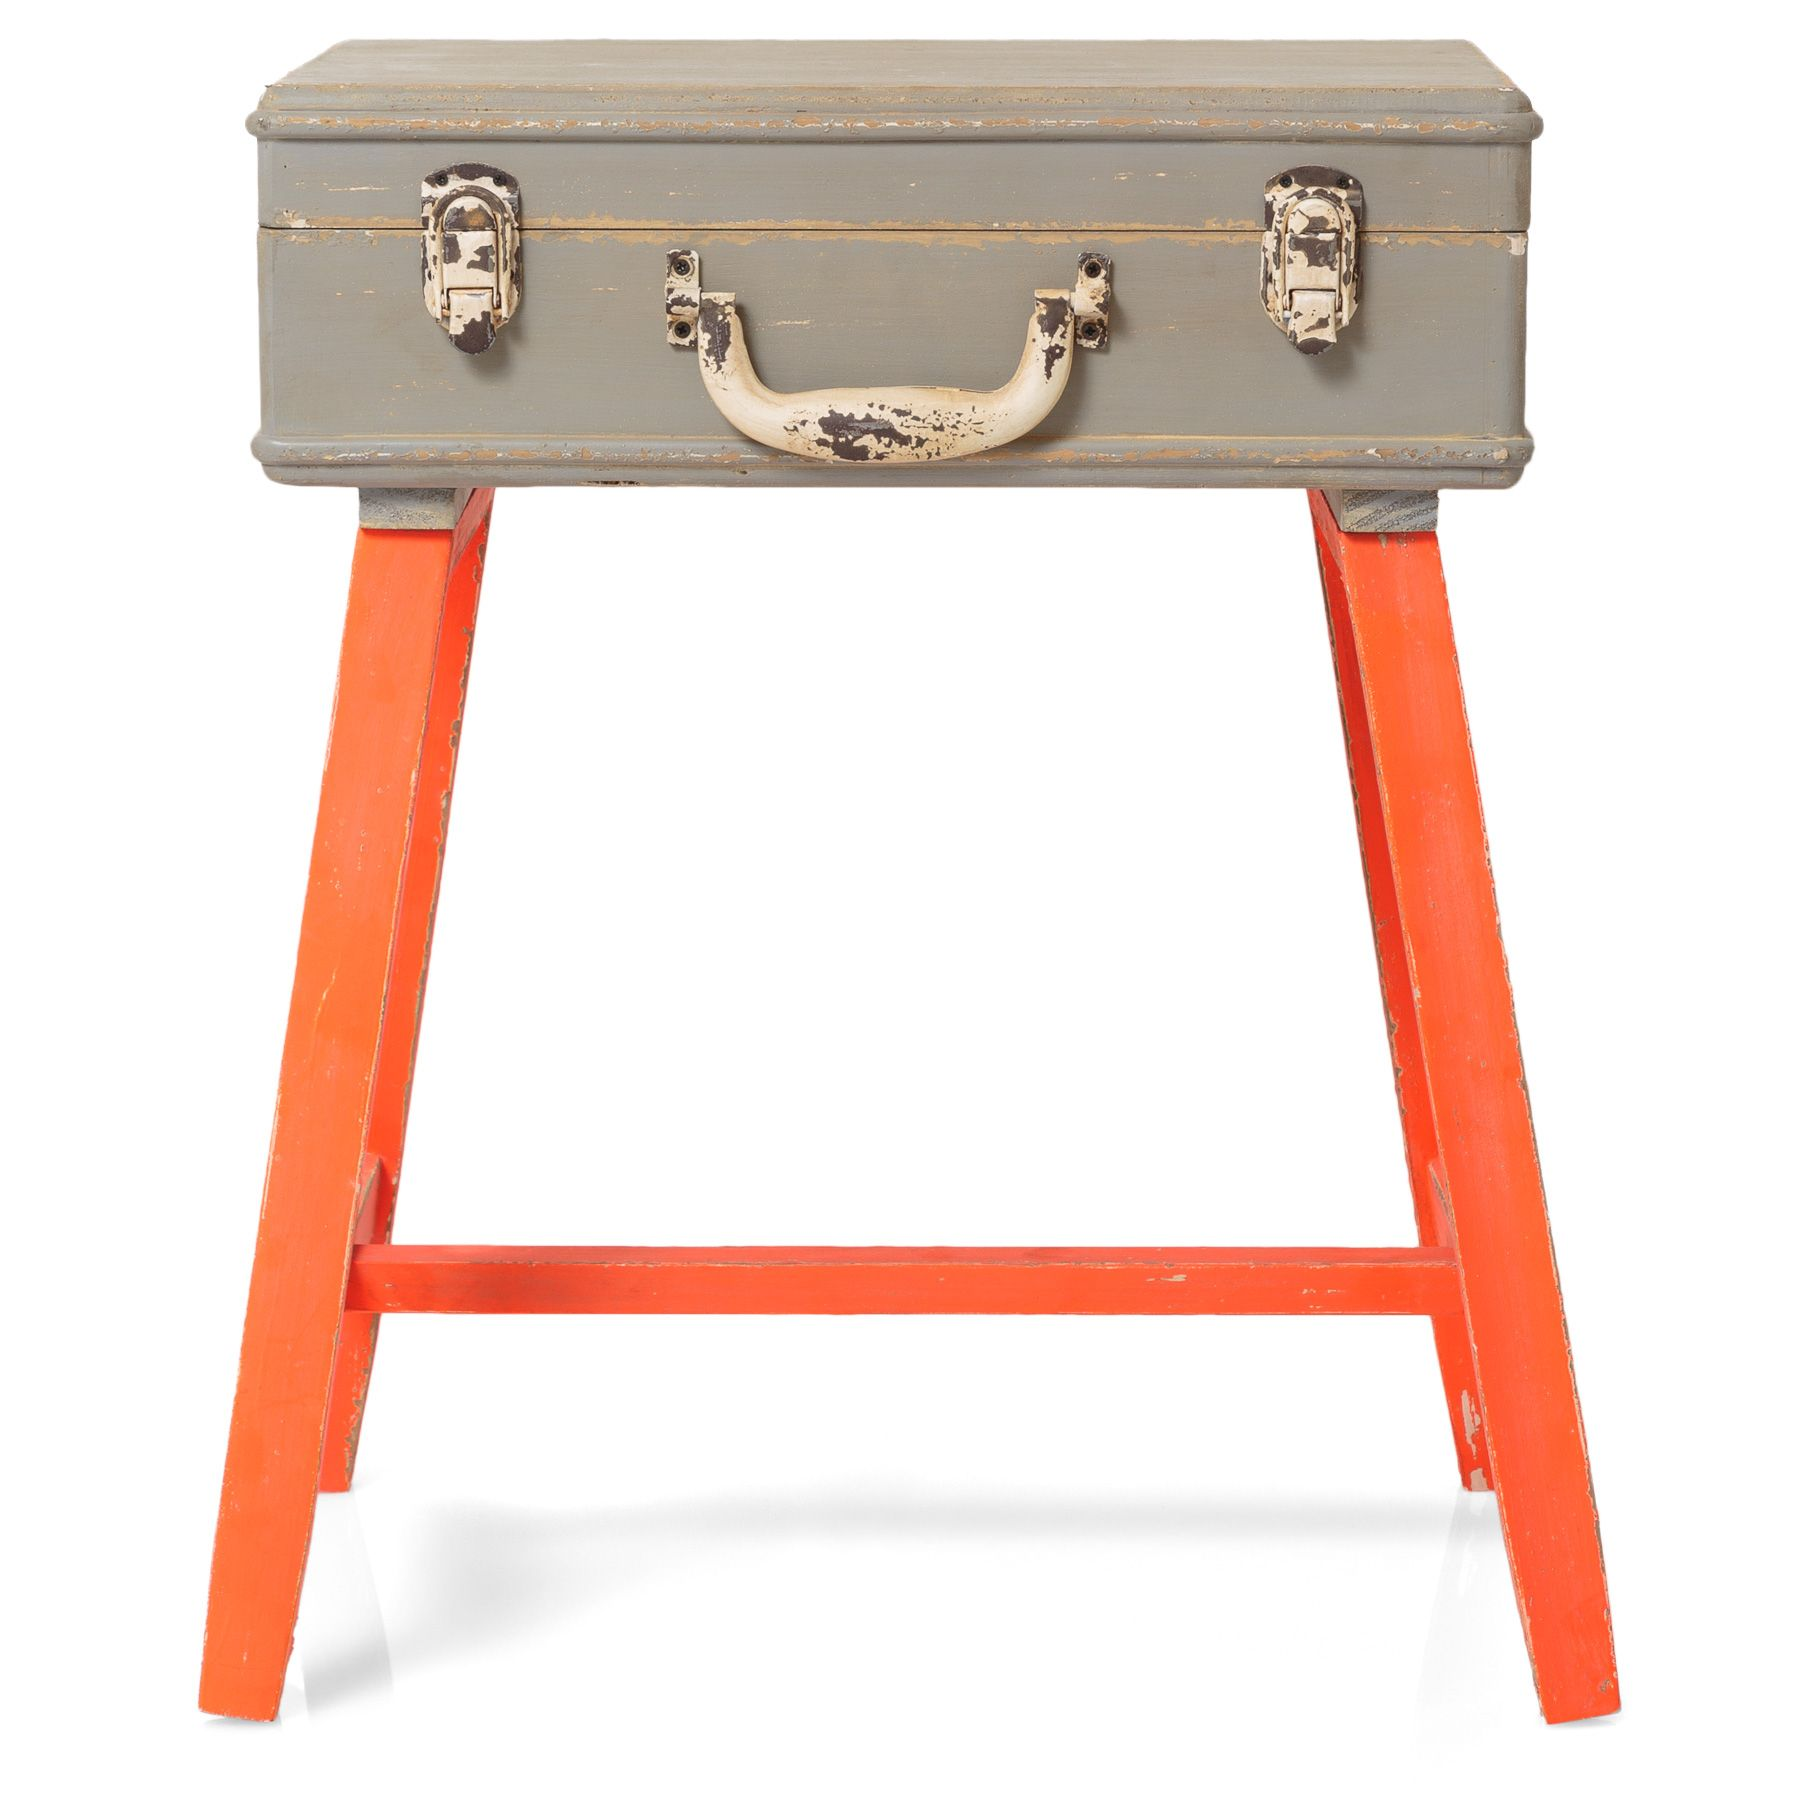 Buy The Orange Suitcase Side Table At Oliver Bonas. We Deliver Furniture  Throughout The UK